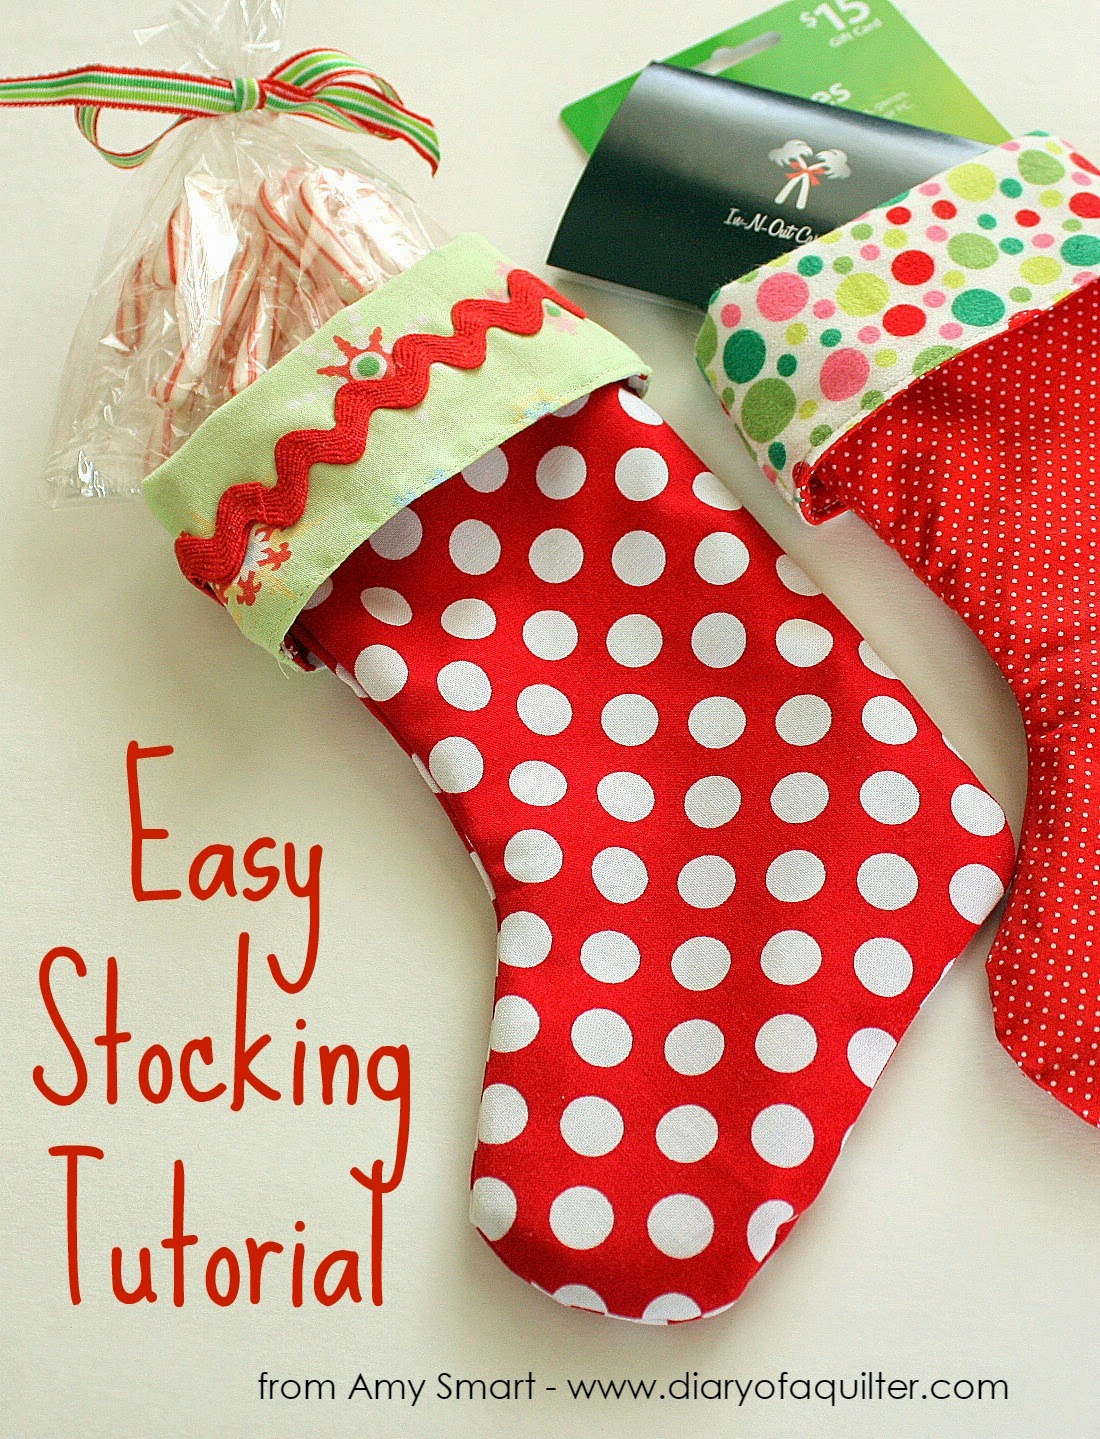 Easy diy stocking tutorial i suggest making a practice stocking just to see how it comes together and i guarantee each stocking you make after that will get faster and easier jeuxipadfo Gallery